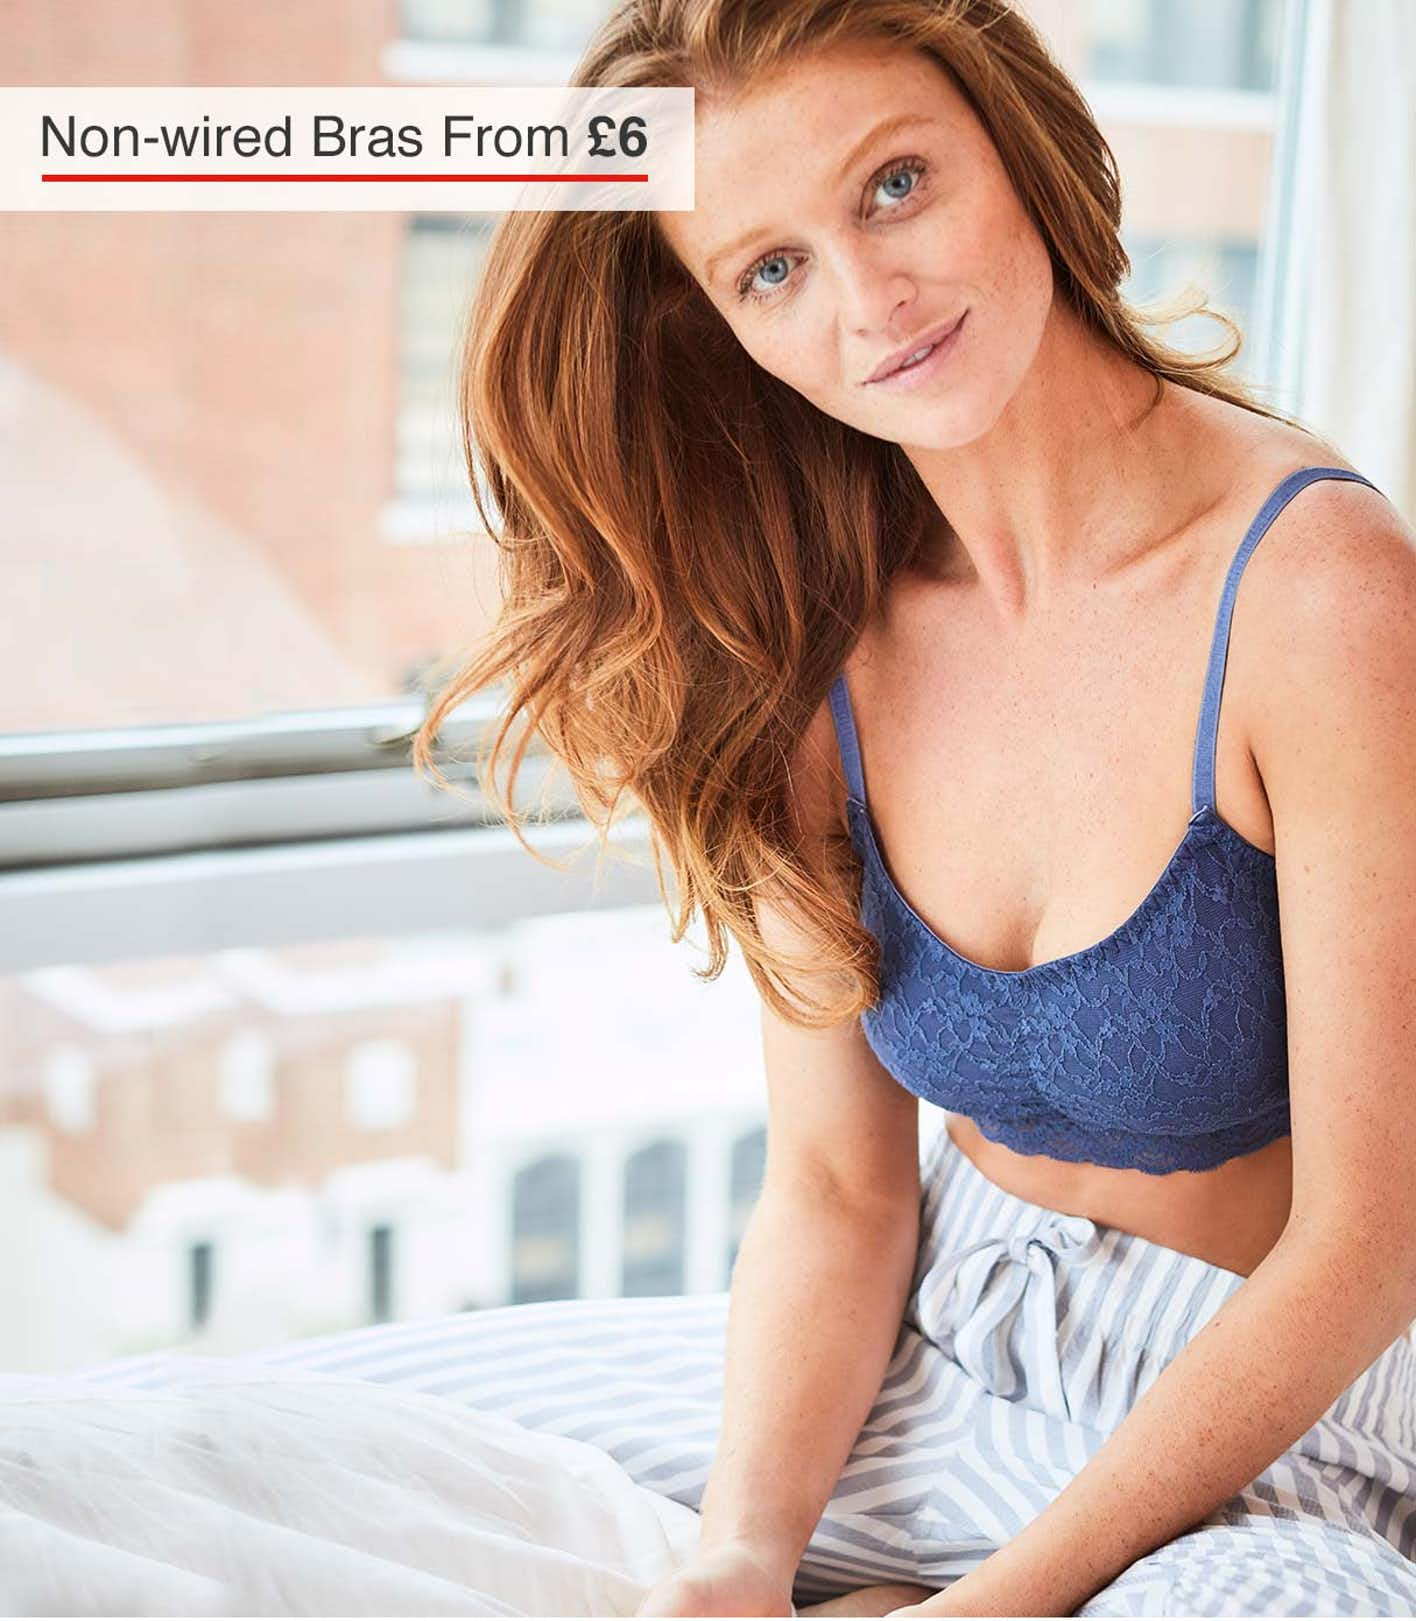 Women's Lingerie | Lingerie Sets, Trends & Buying Guides ...